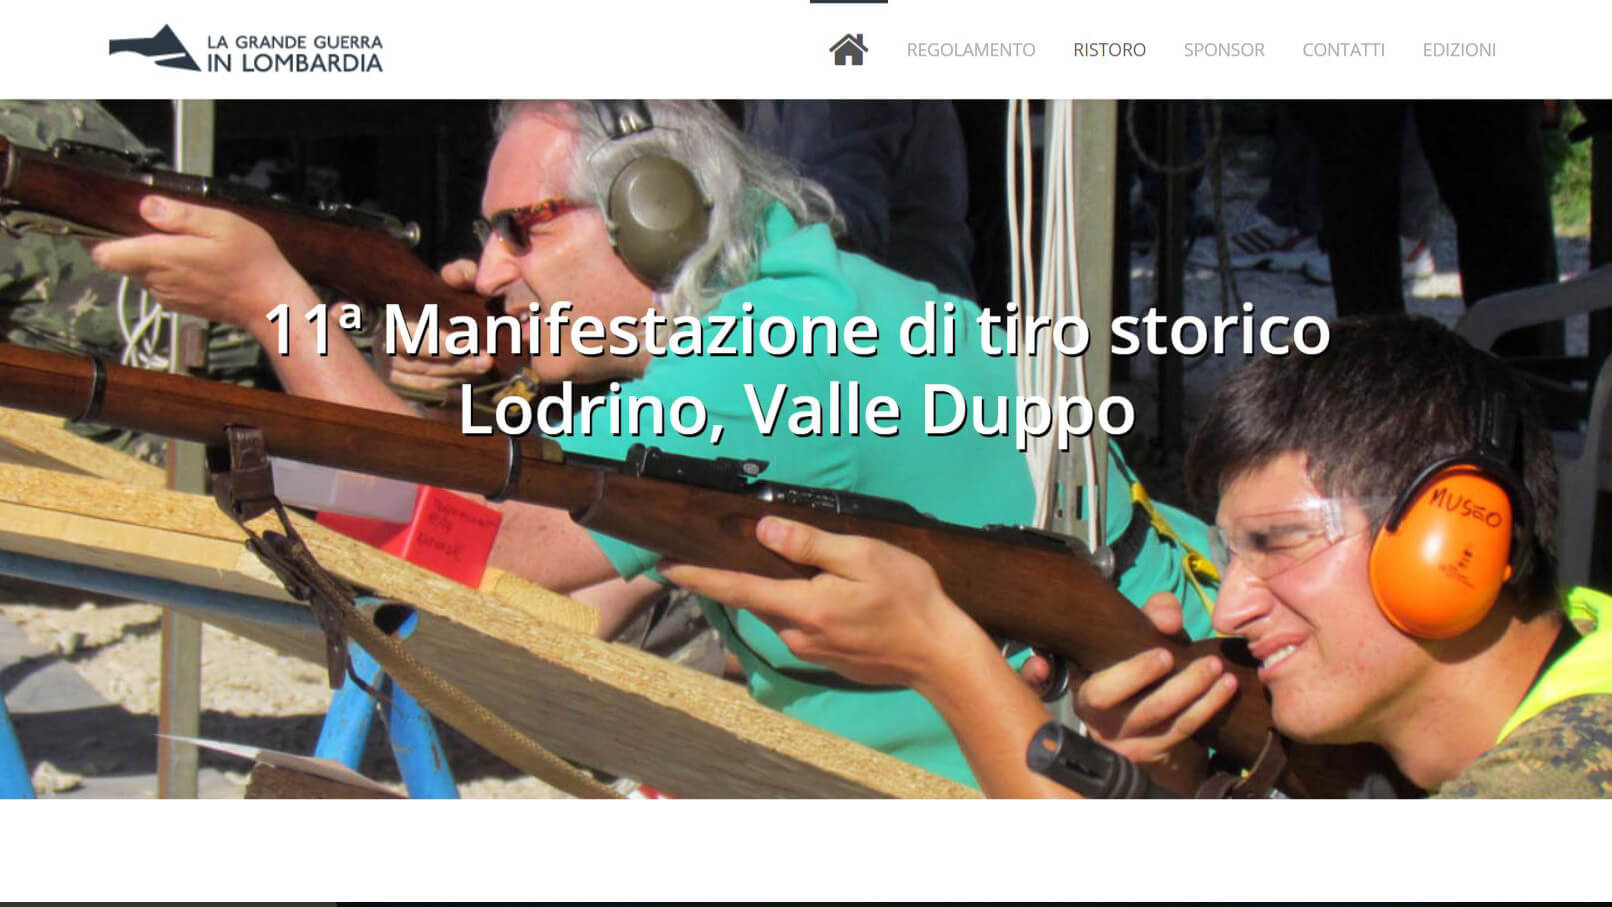 The website for the 11<sup>th</sup> historical shooting meeting in Lodrino